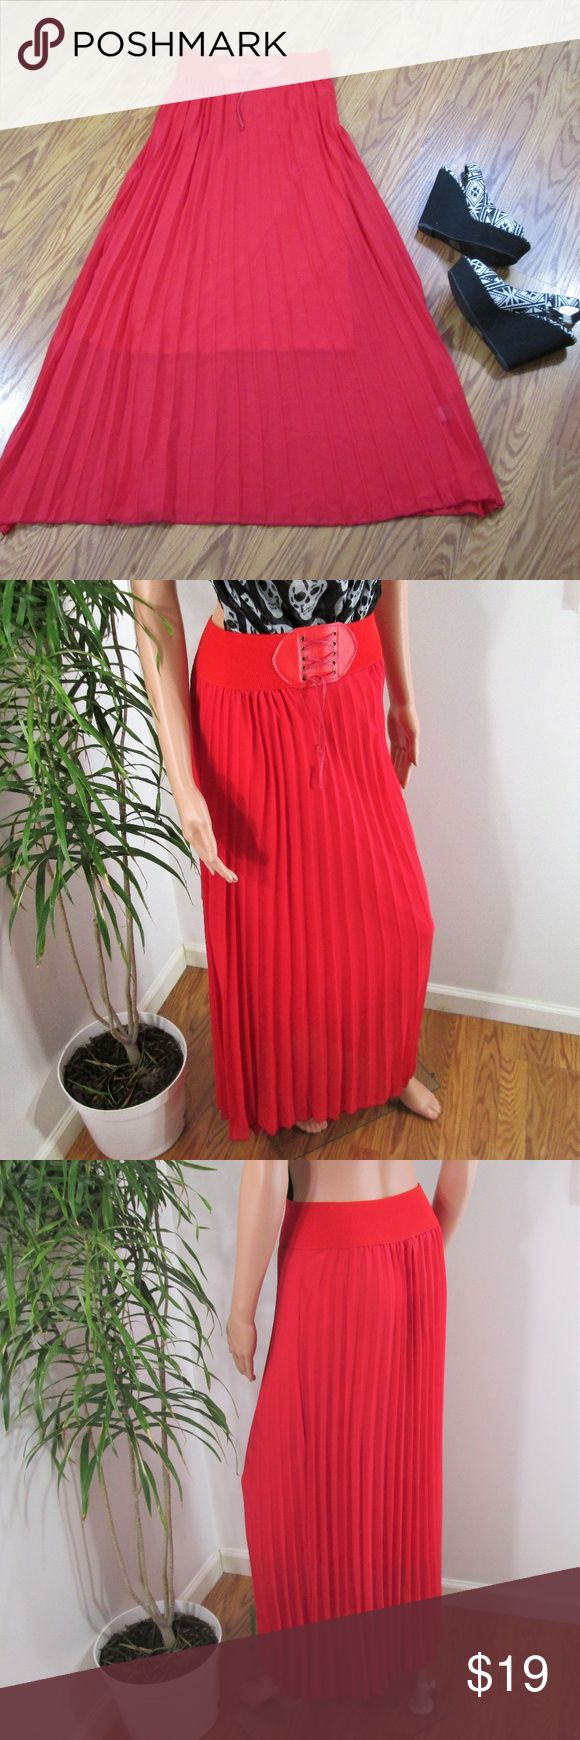 """New! Knife Pleat Chiffon Maxi Skirt Red floaty skirt is lined to knee. Wide elastic waistband with faux lace up buckle detail.  Measured flat. 13"""" ~ 18"""" across waist. 43"""" long. on 5' 9'' model. Mia Mia Skirts Maxi"""